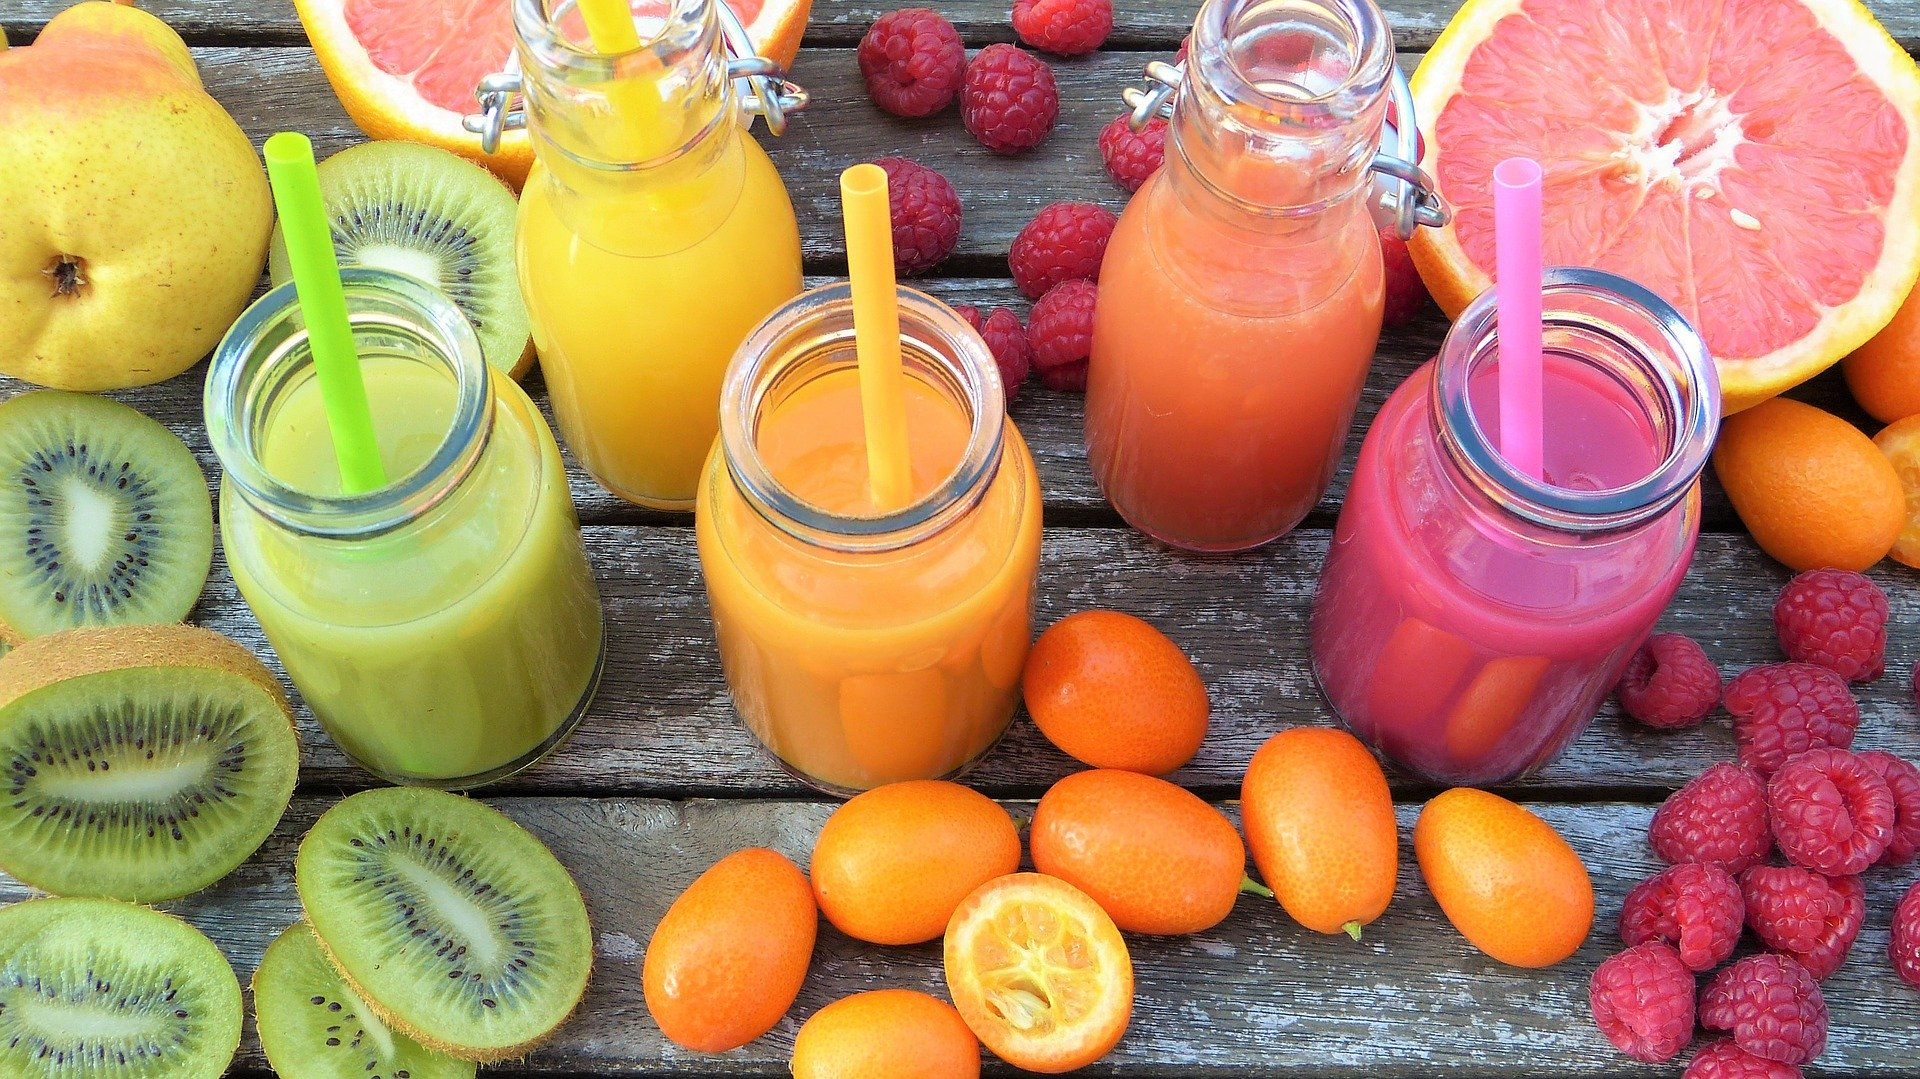 Four glasses of juice surrounded by a variety of cut fruit